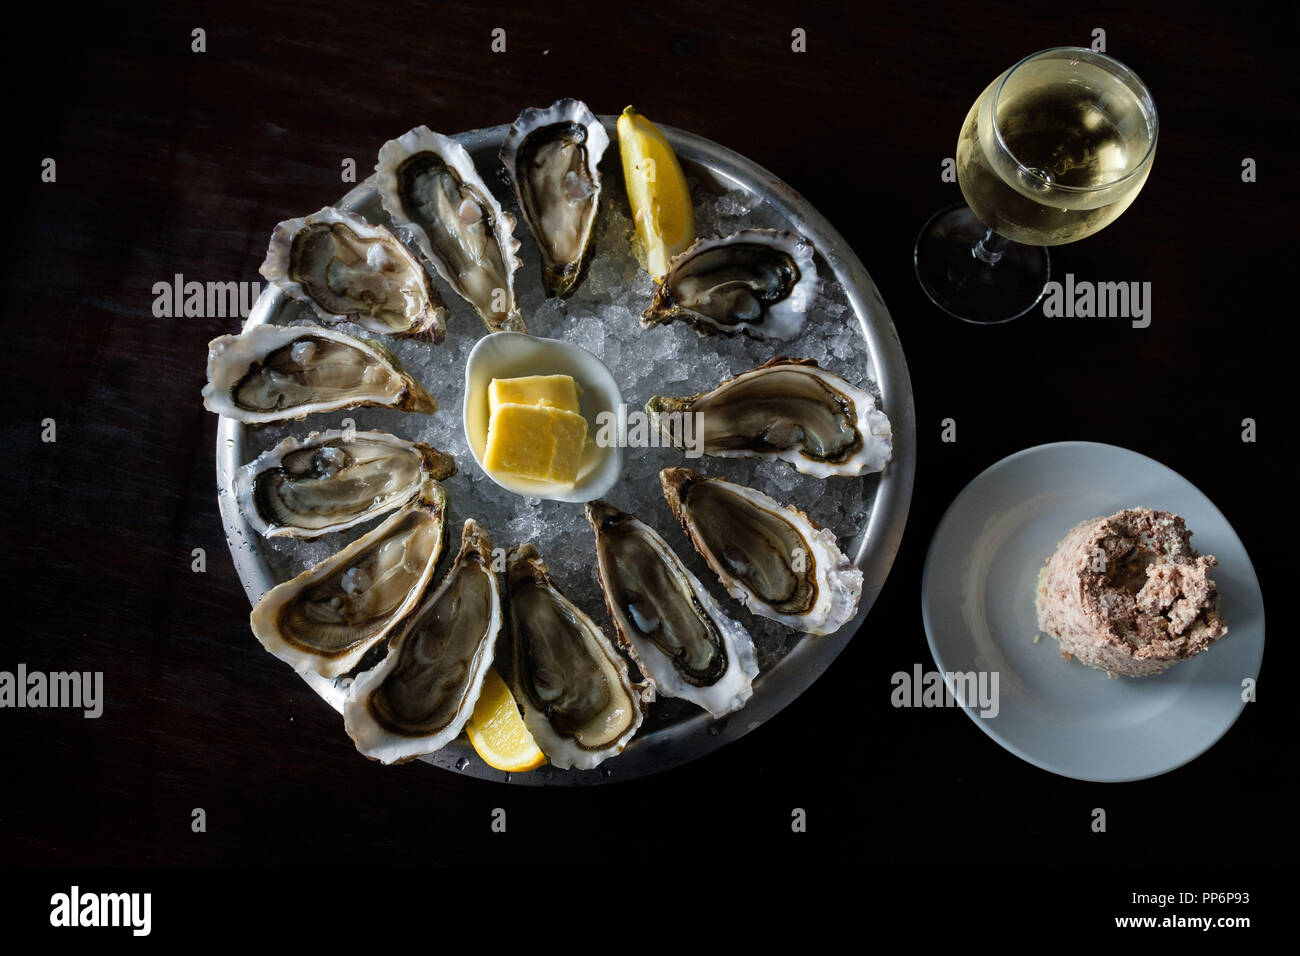 Plate of oysters from the Arcachon bay. Oysters on a bed of ice with lemon, butter, a glass of wine and some pate - Stock Image